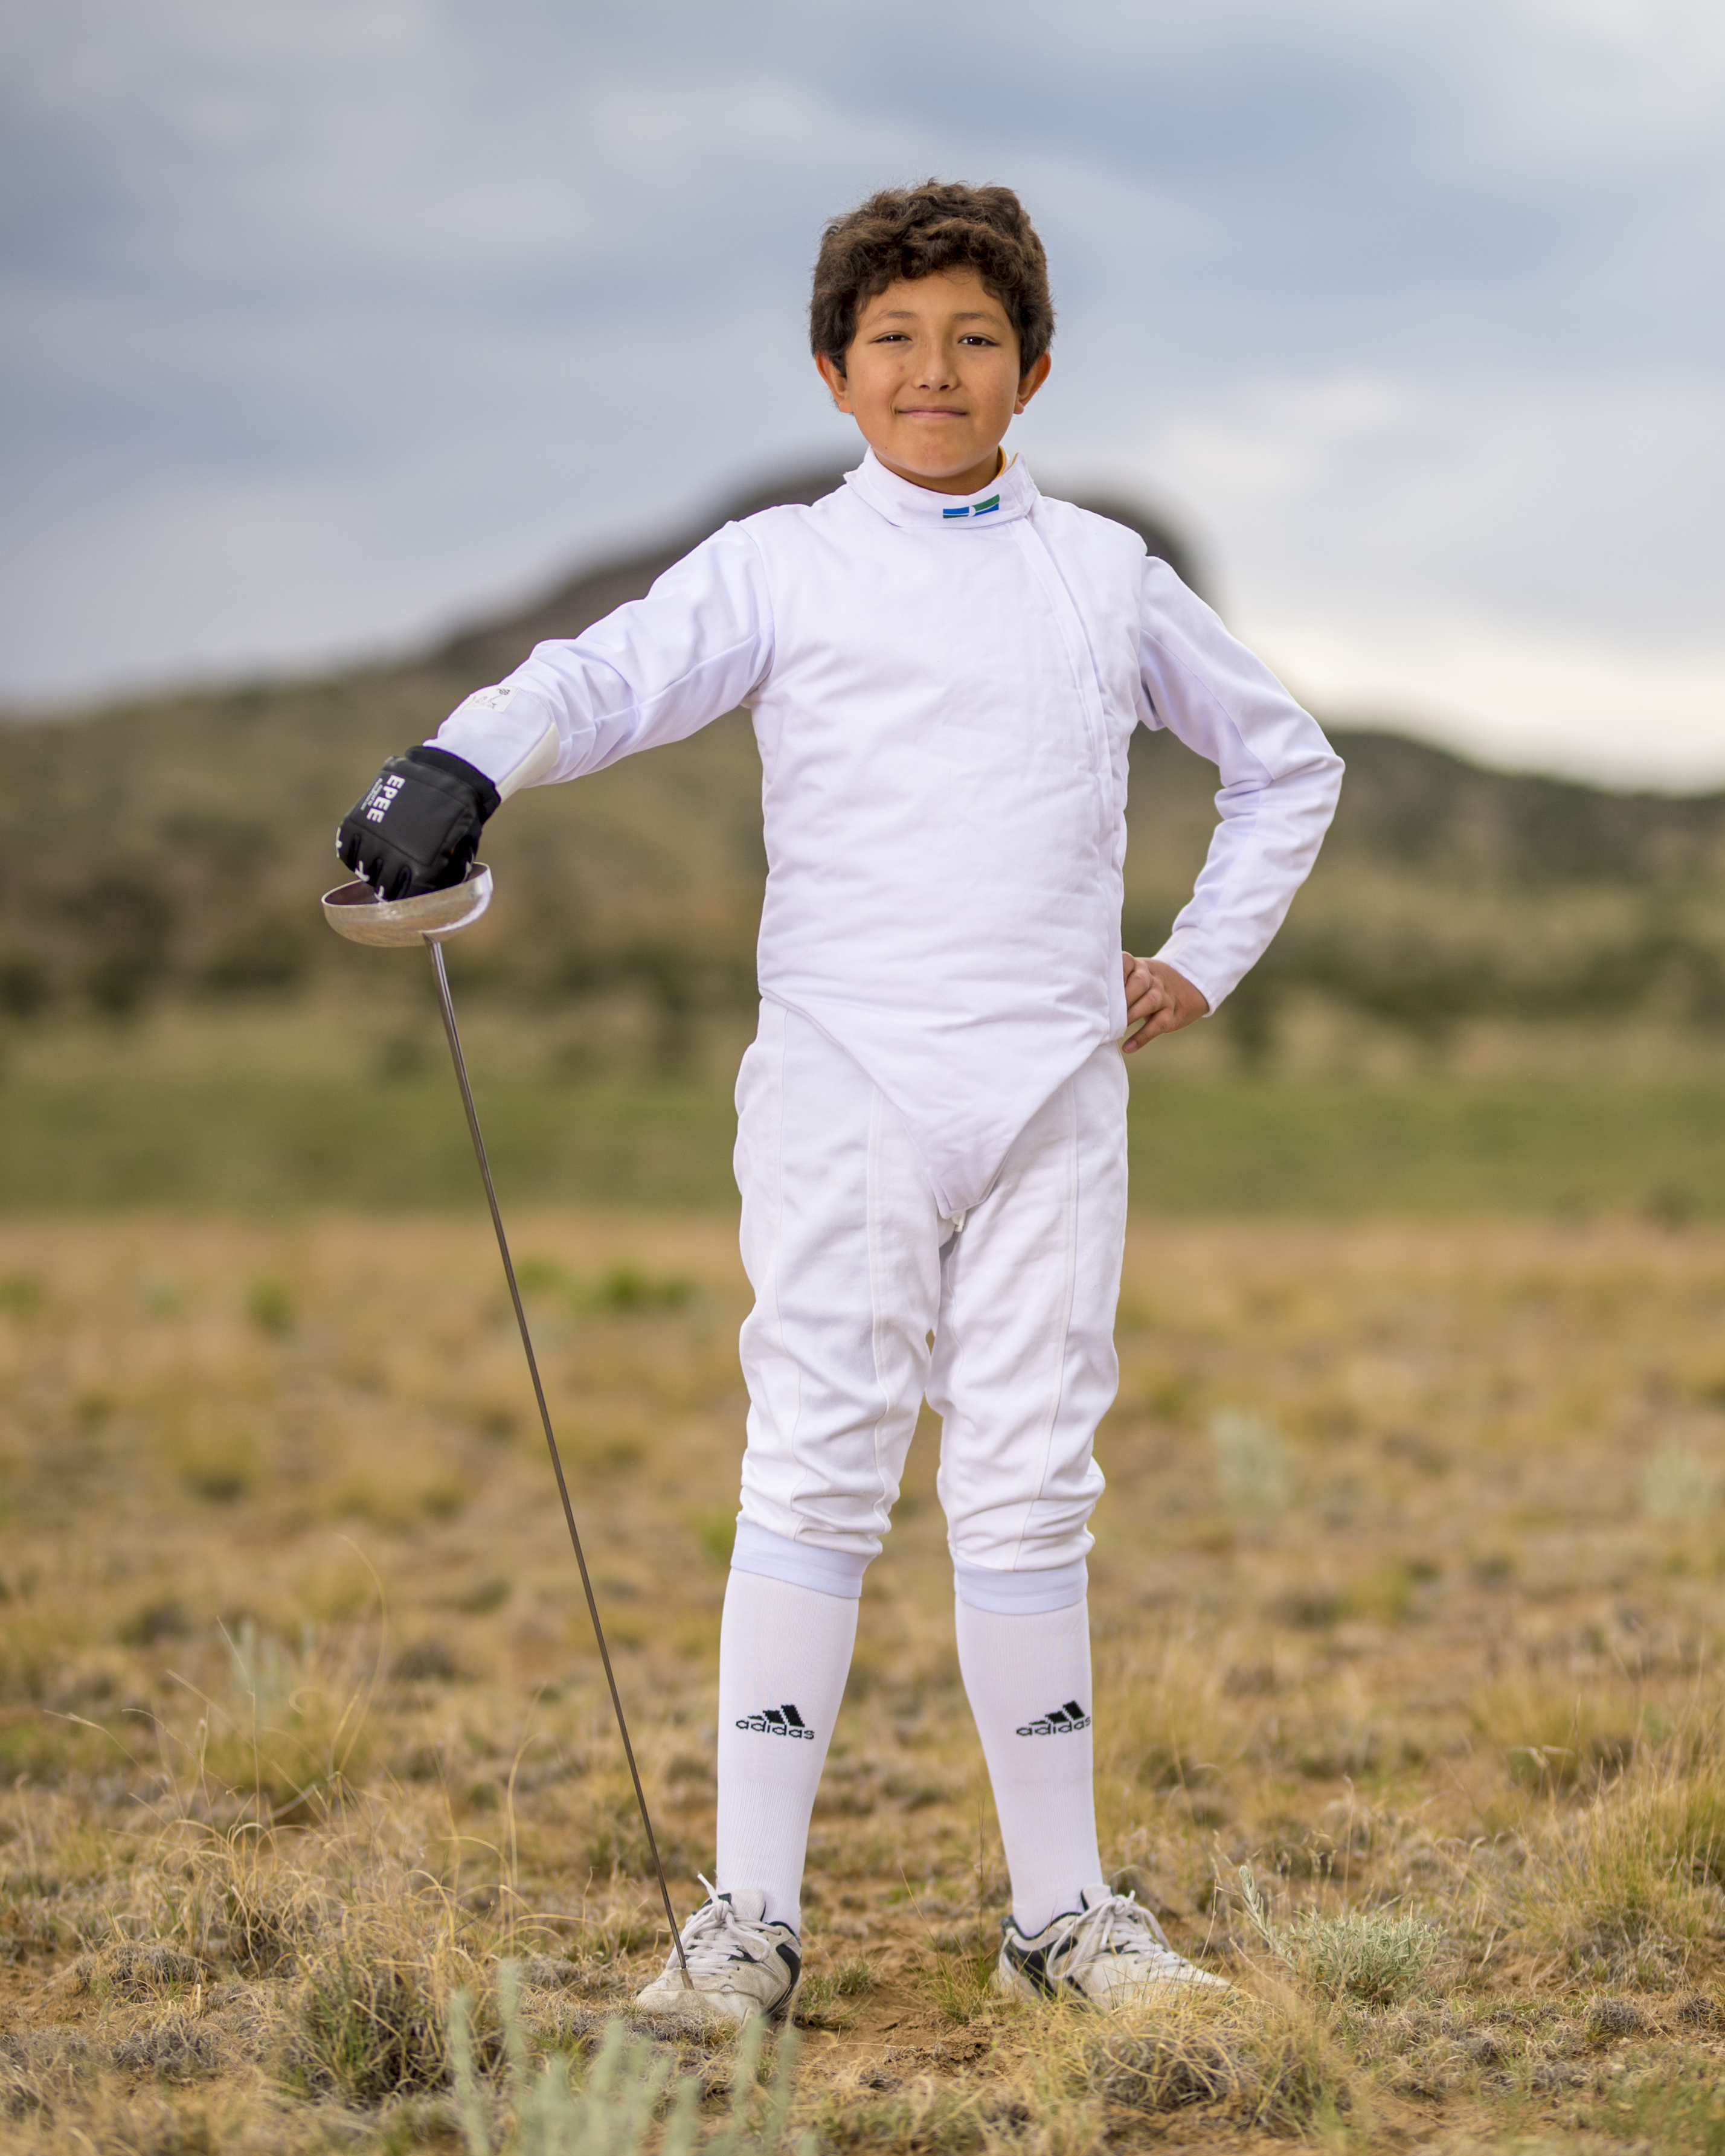 Shannon R Stevens Photography and Duke City Fencing